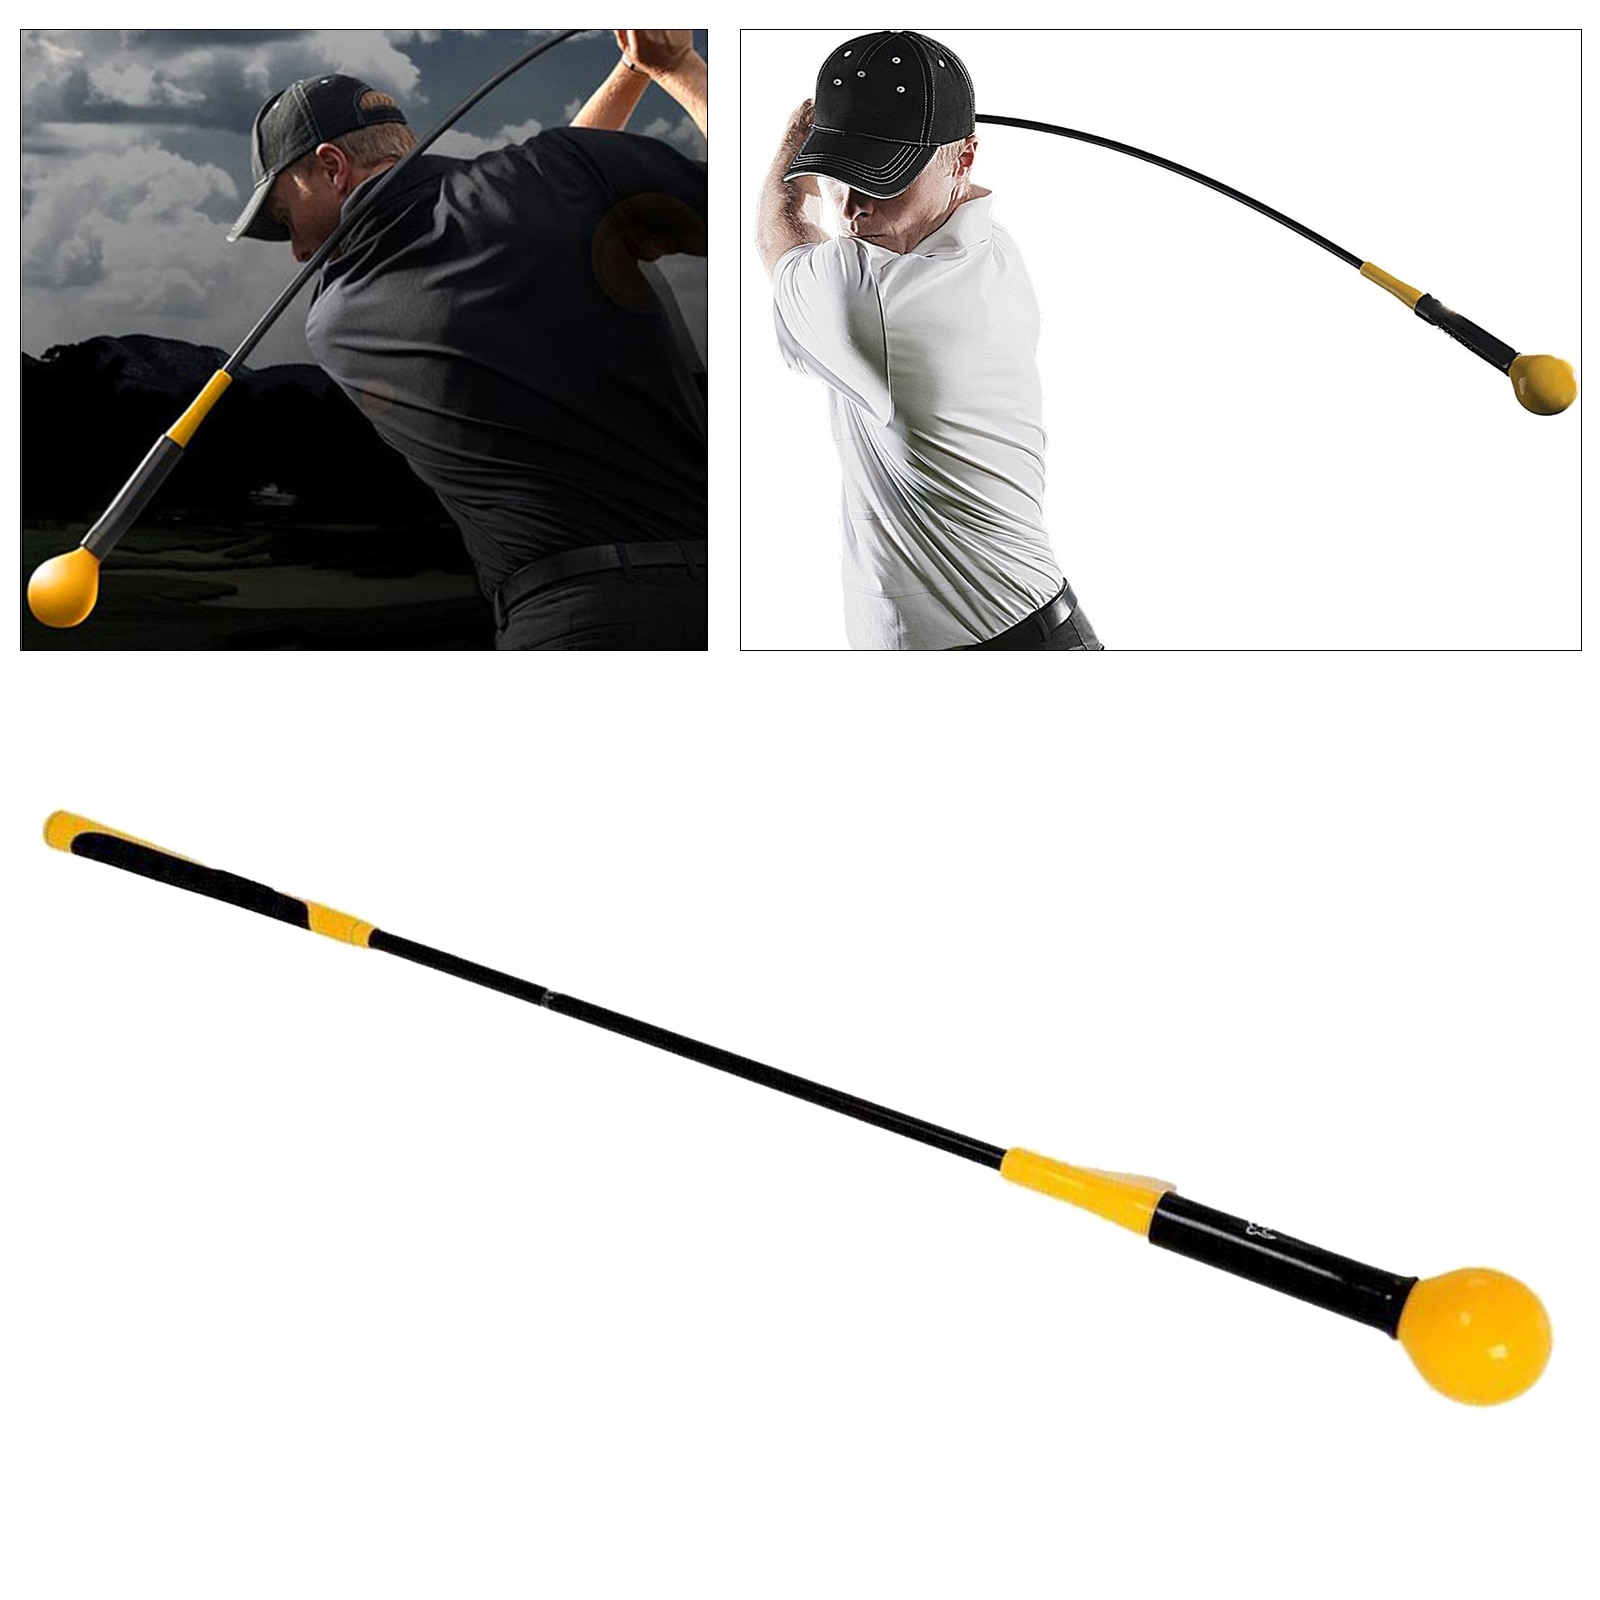 120cm Golf Indoor Outdoor Practice Swing Aids Tool Beginners Auxiliary Training Swing Exercise Stick Golf Equipment